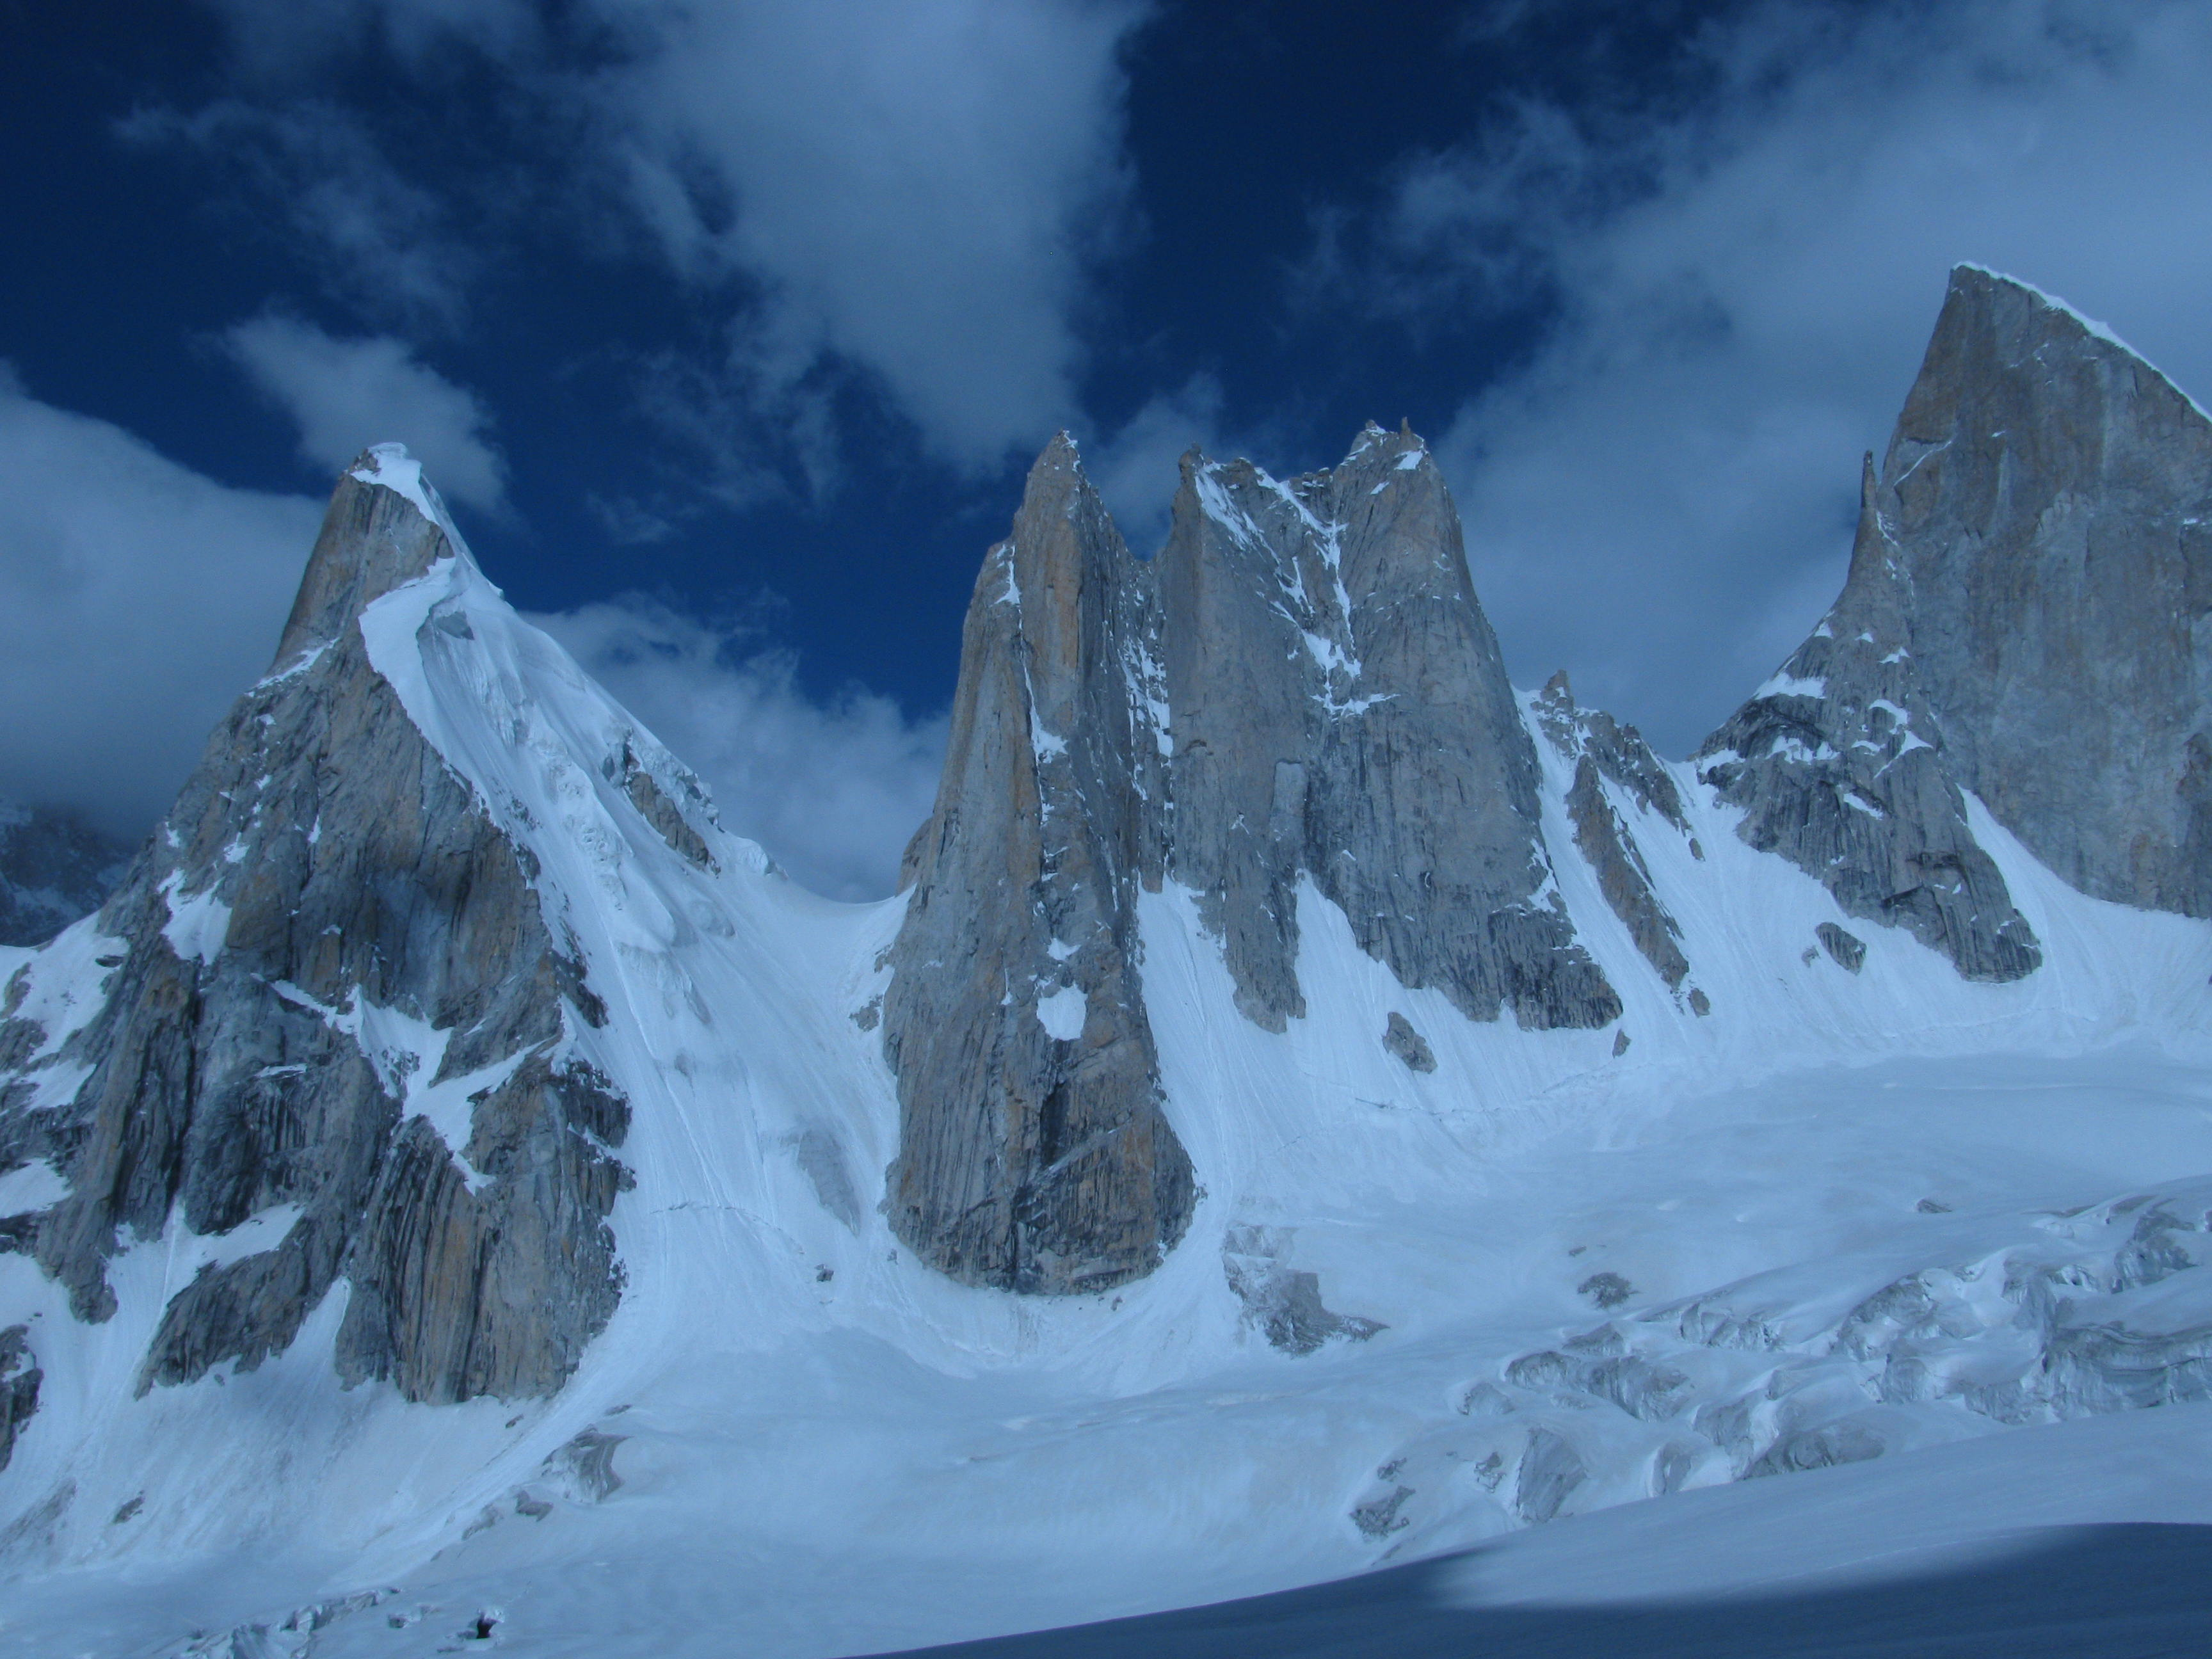 BIACHERAHI TOWERS (5,900 M)